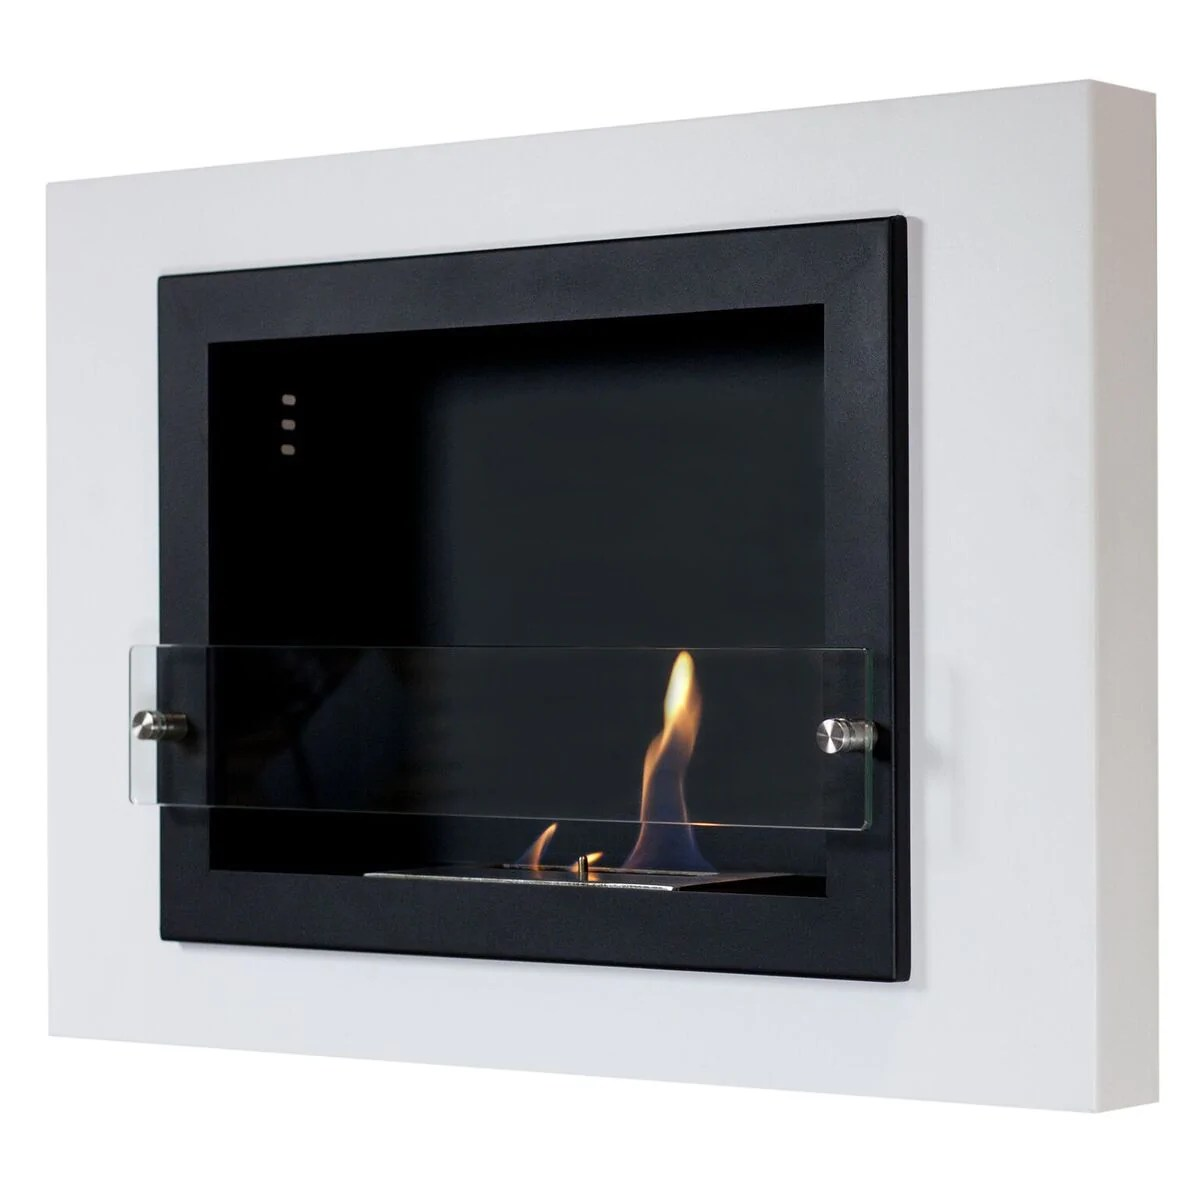 Alcohol Fuel Fireplace Camino Bianco Wall Mount Ethanol Fireplace White 4 Sizes Available